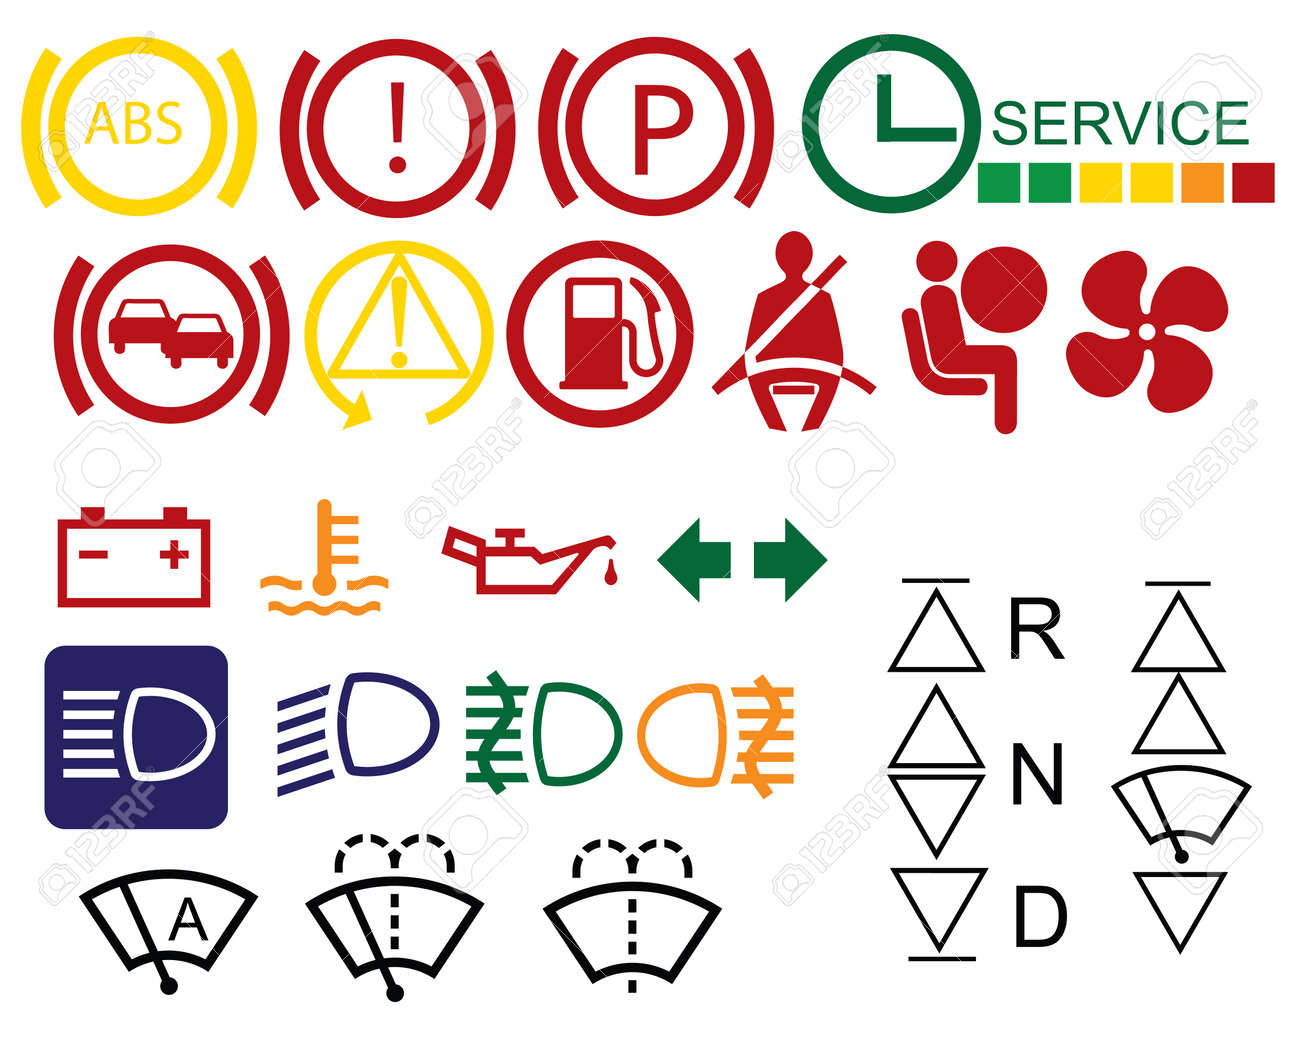 Car Dashboard Signs Isolated On White Background Royalty Free - Car image sign of dashboarddashboard warning lights stock images royaltyfree images